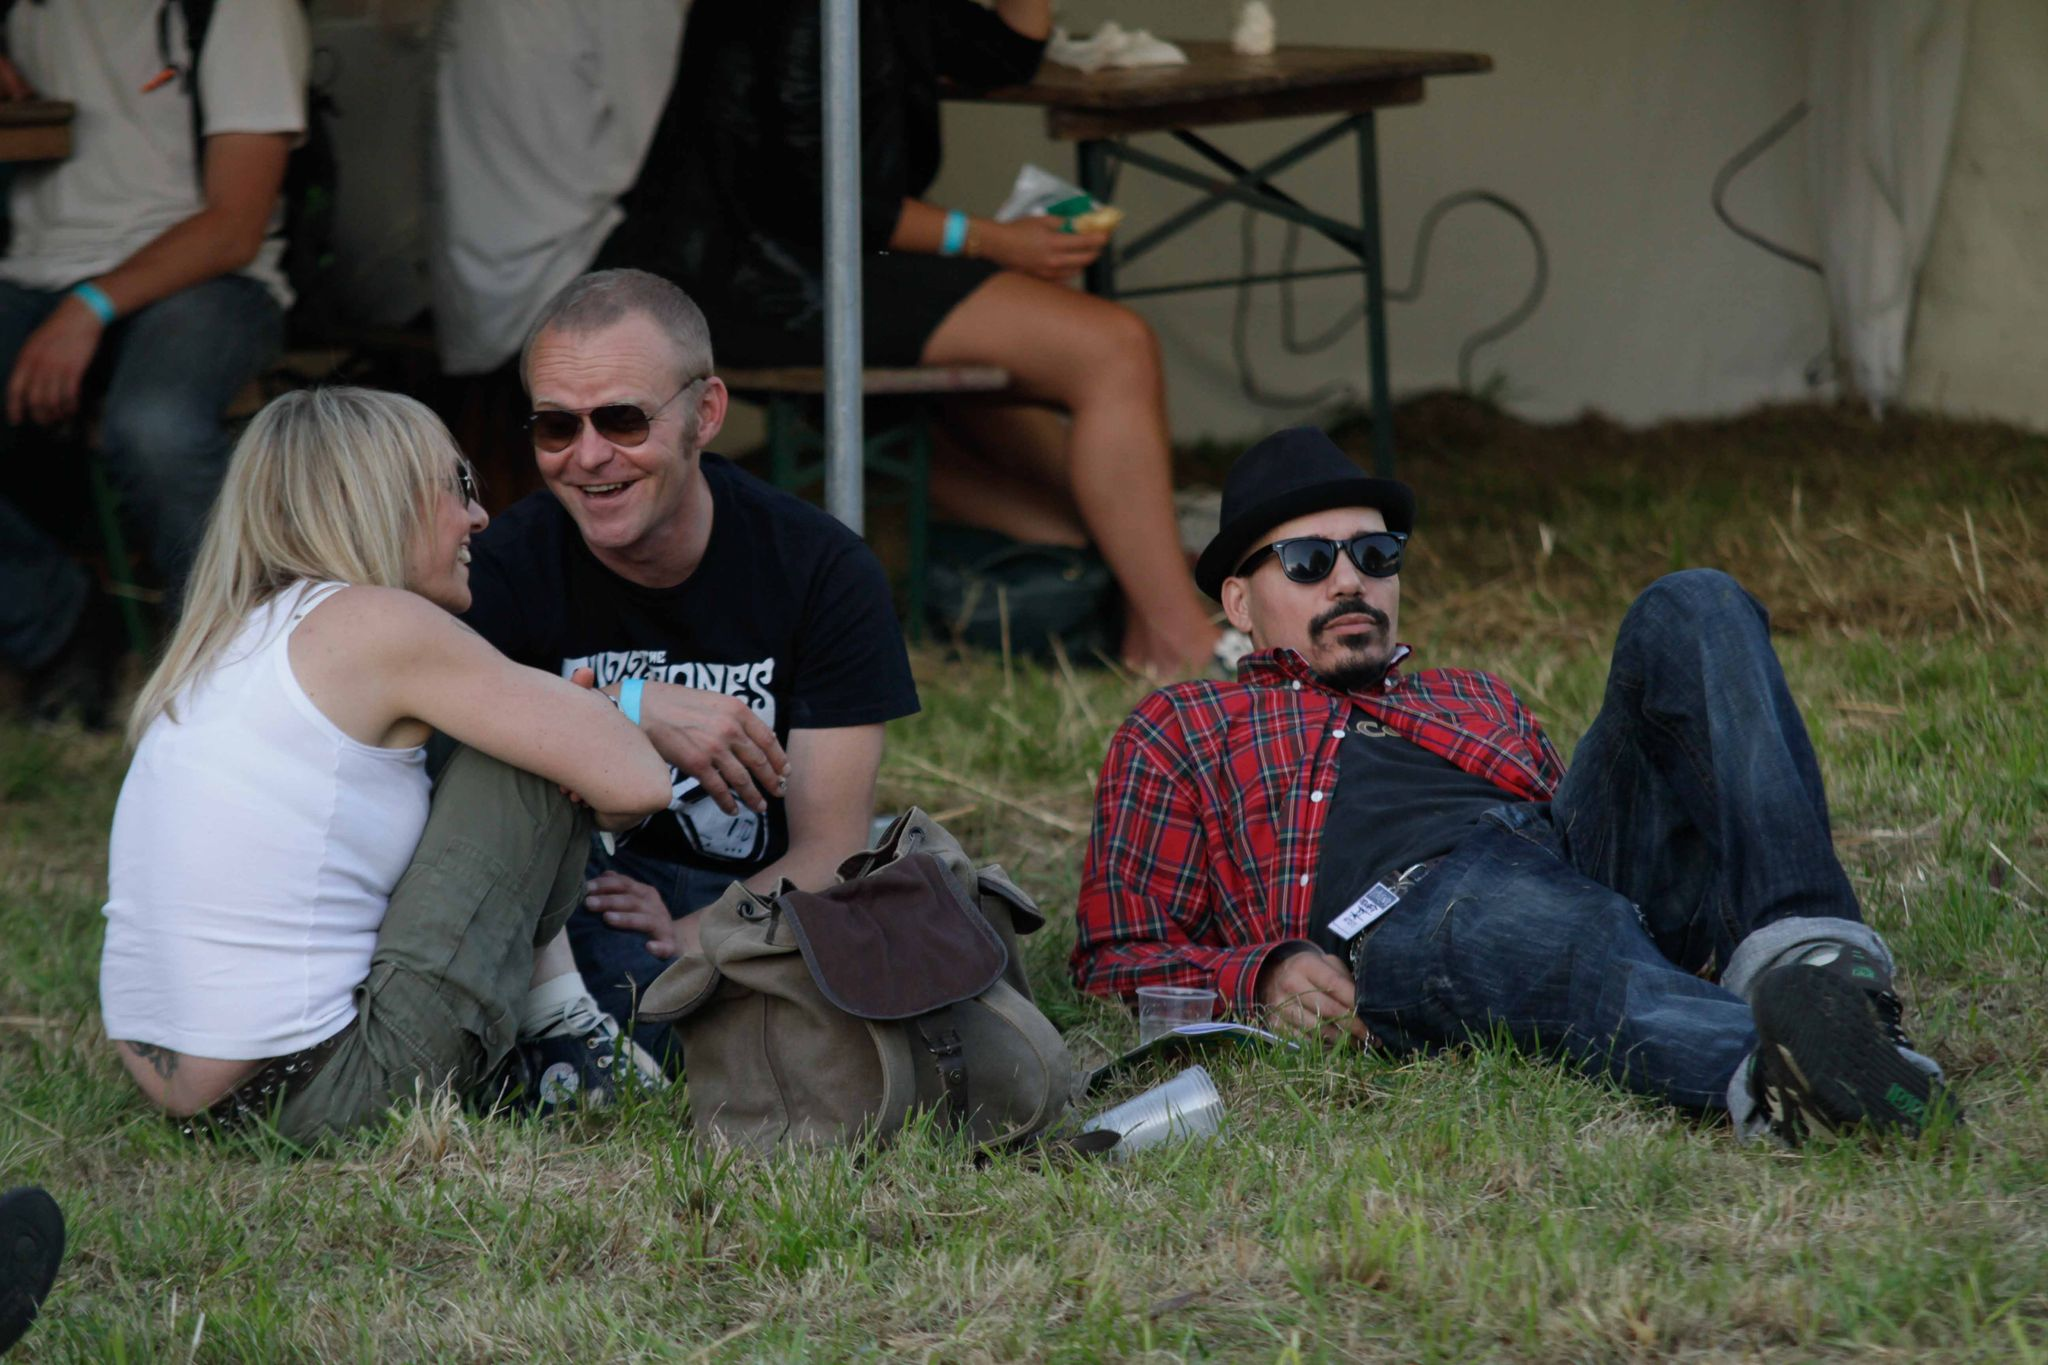 Ambiance-DTGFestival-2012-237